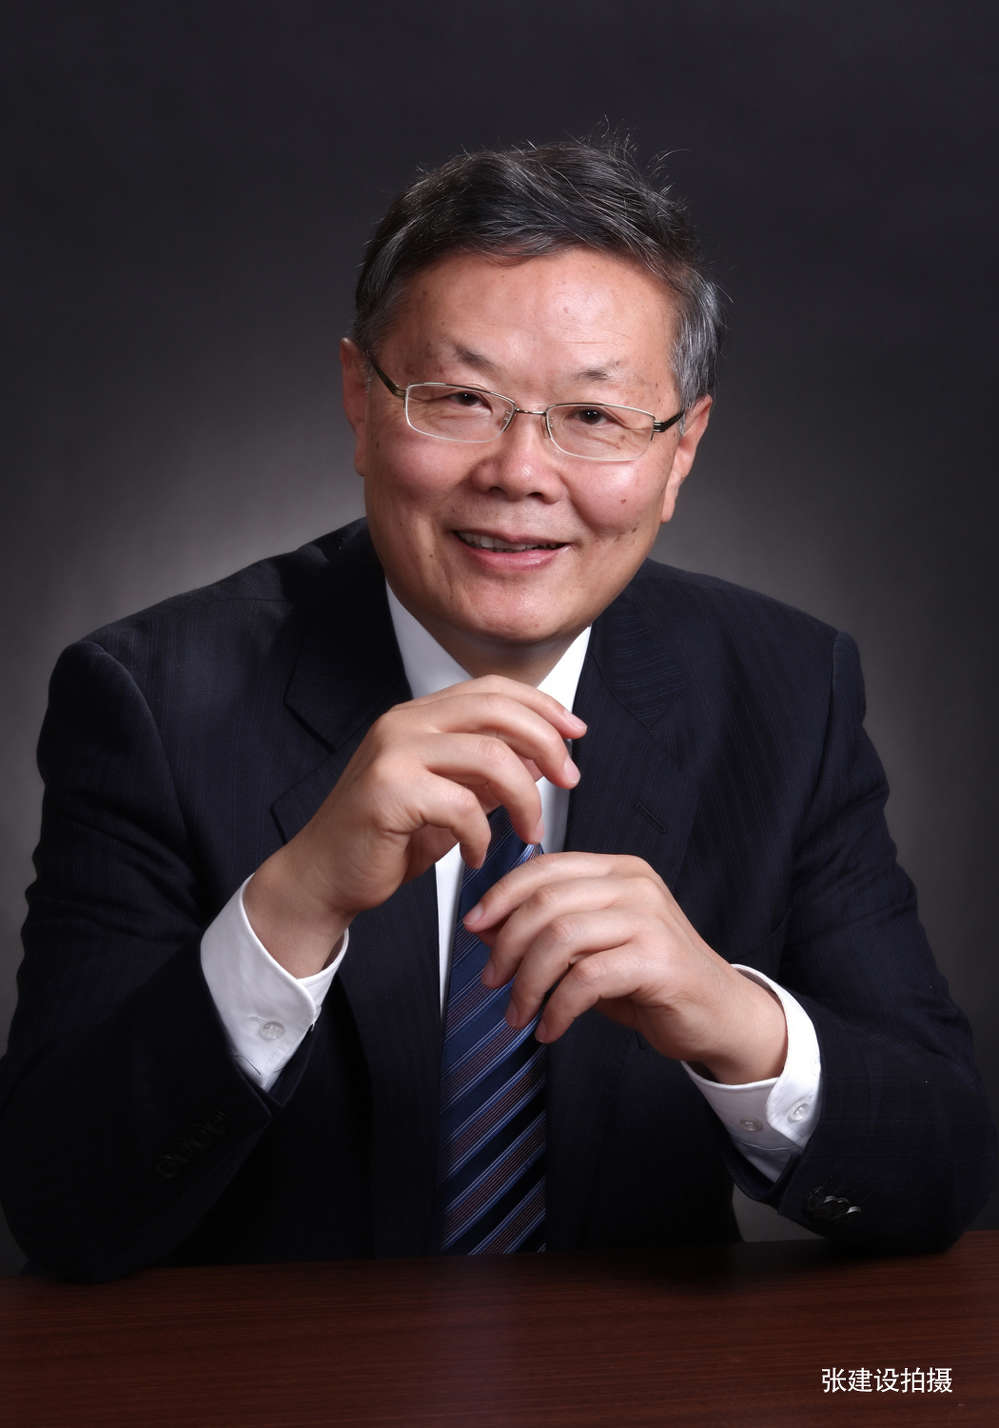 He Qinghua is the founder of Sunward Equipment Group.